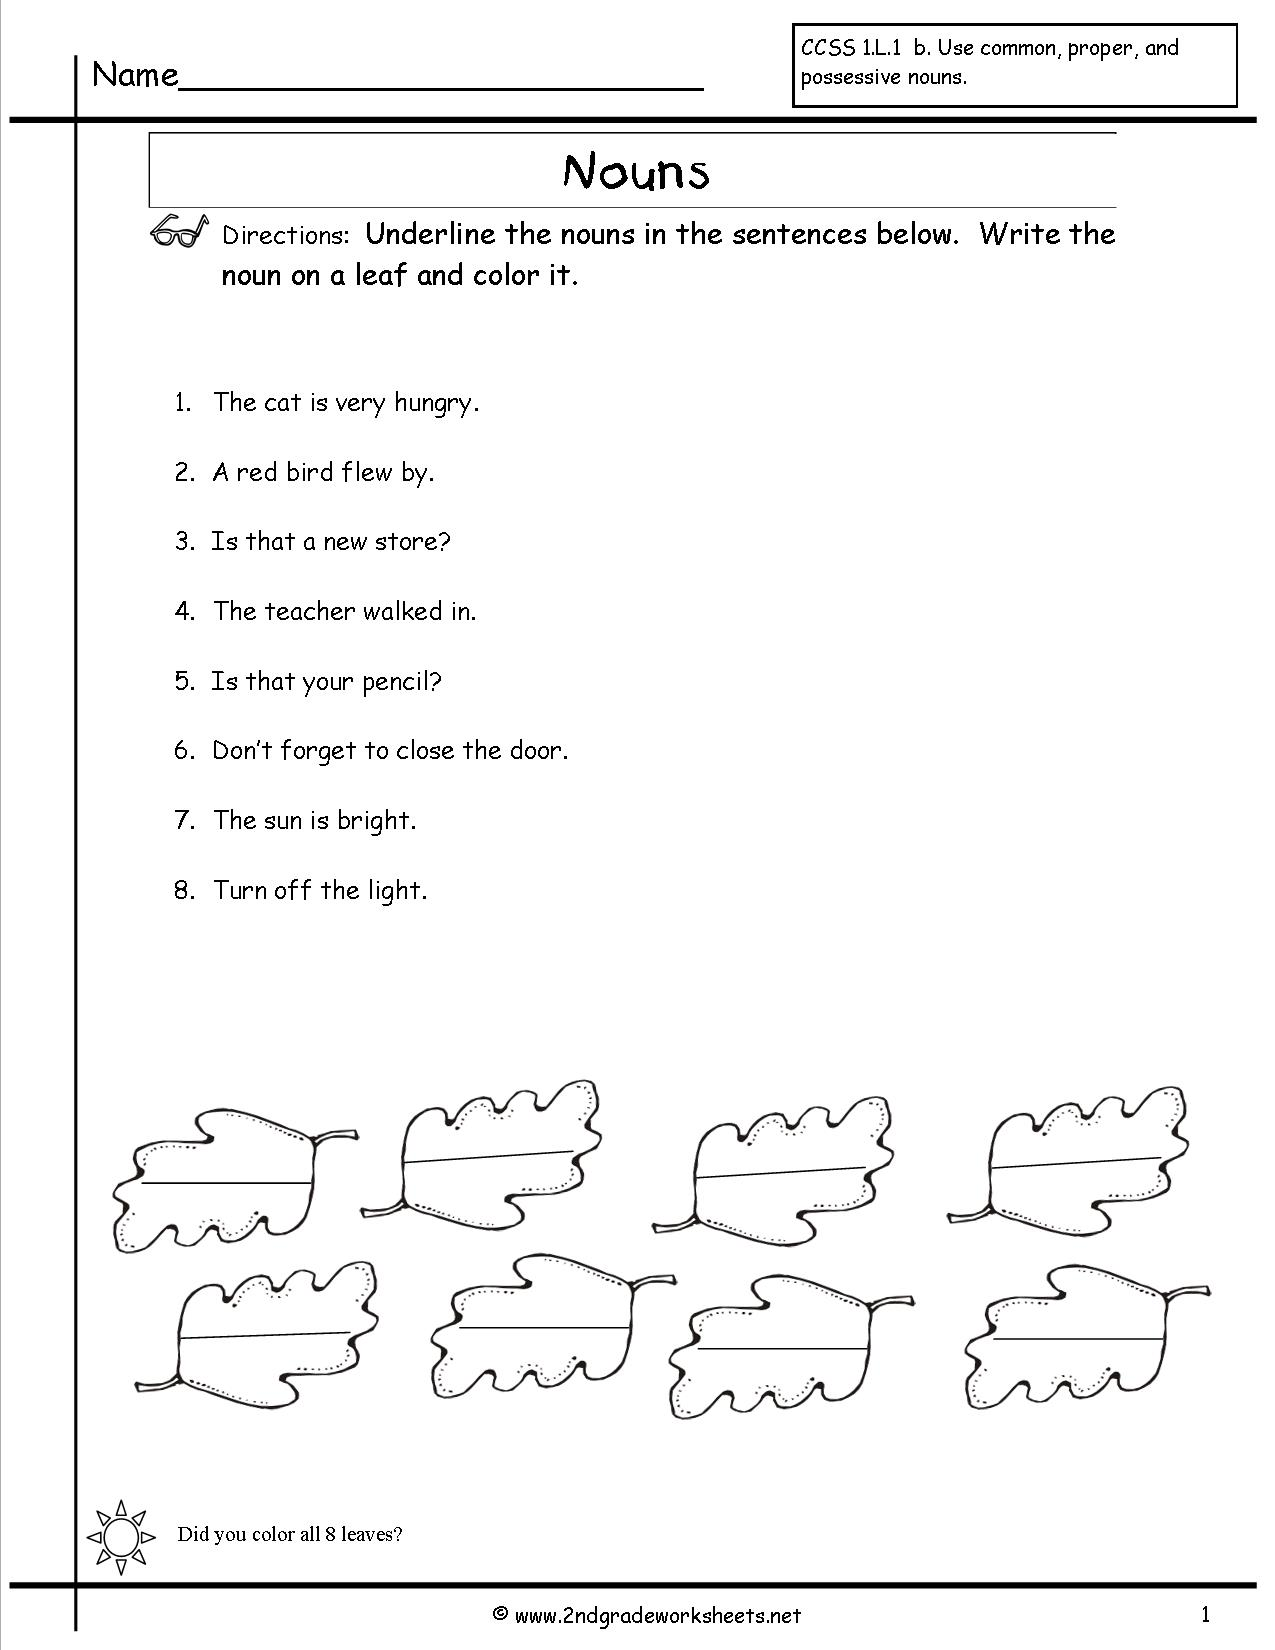 19 Best Images Of Proper Noun Worksheets Grade 1